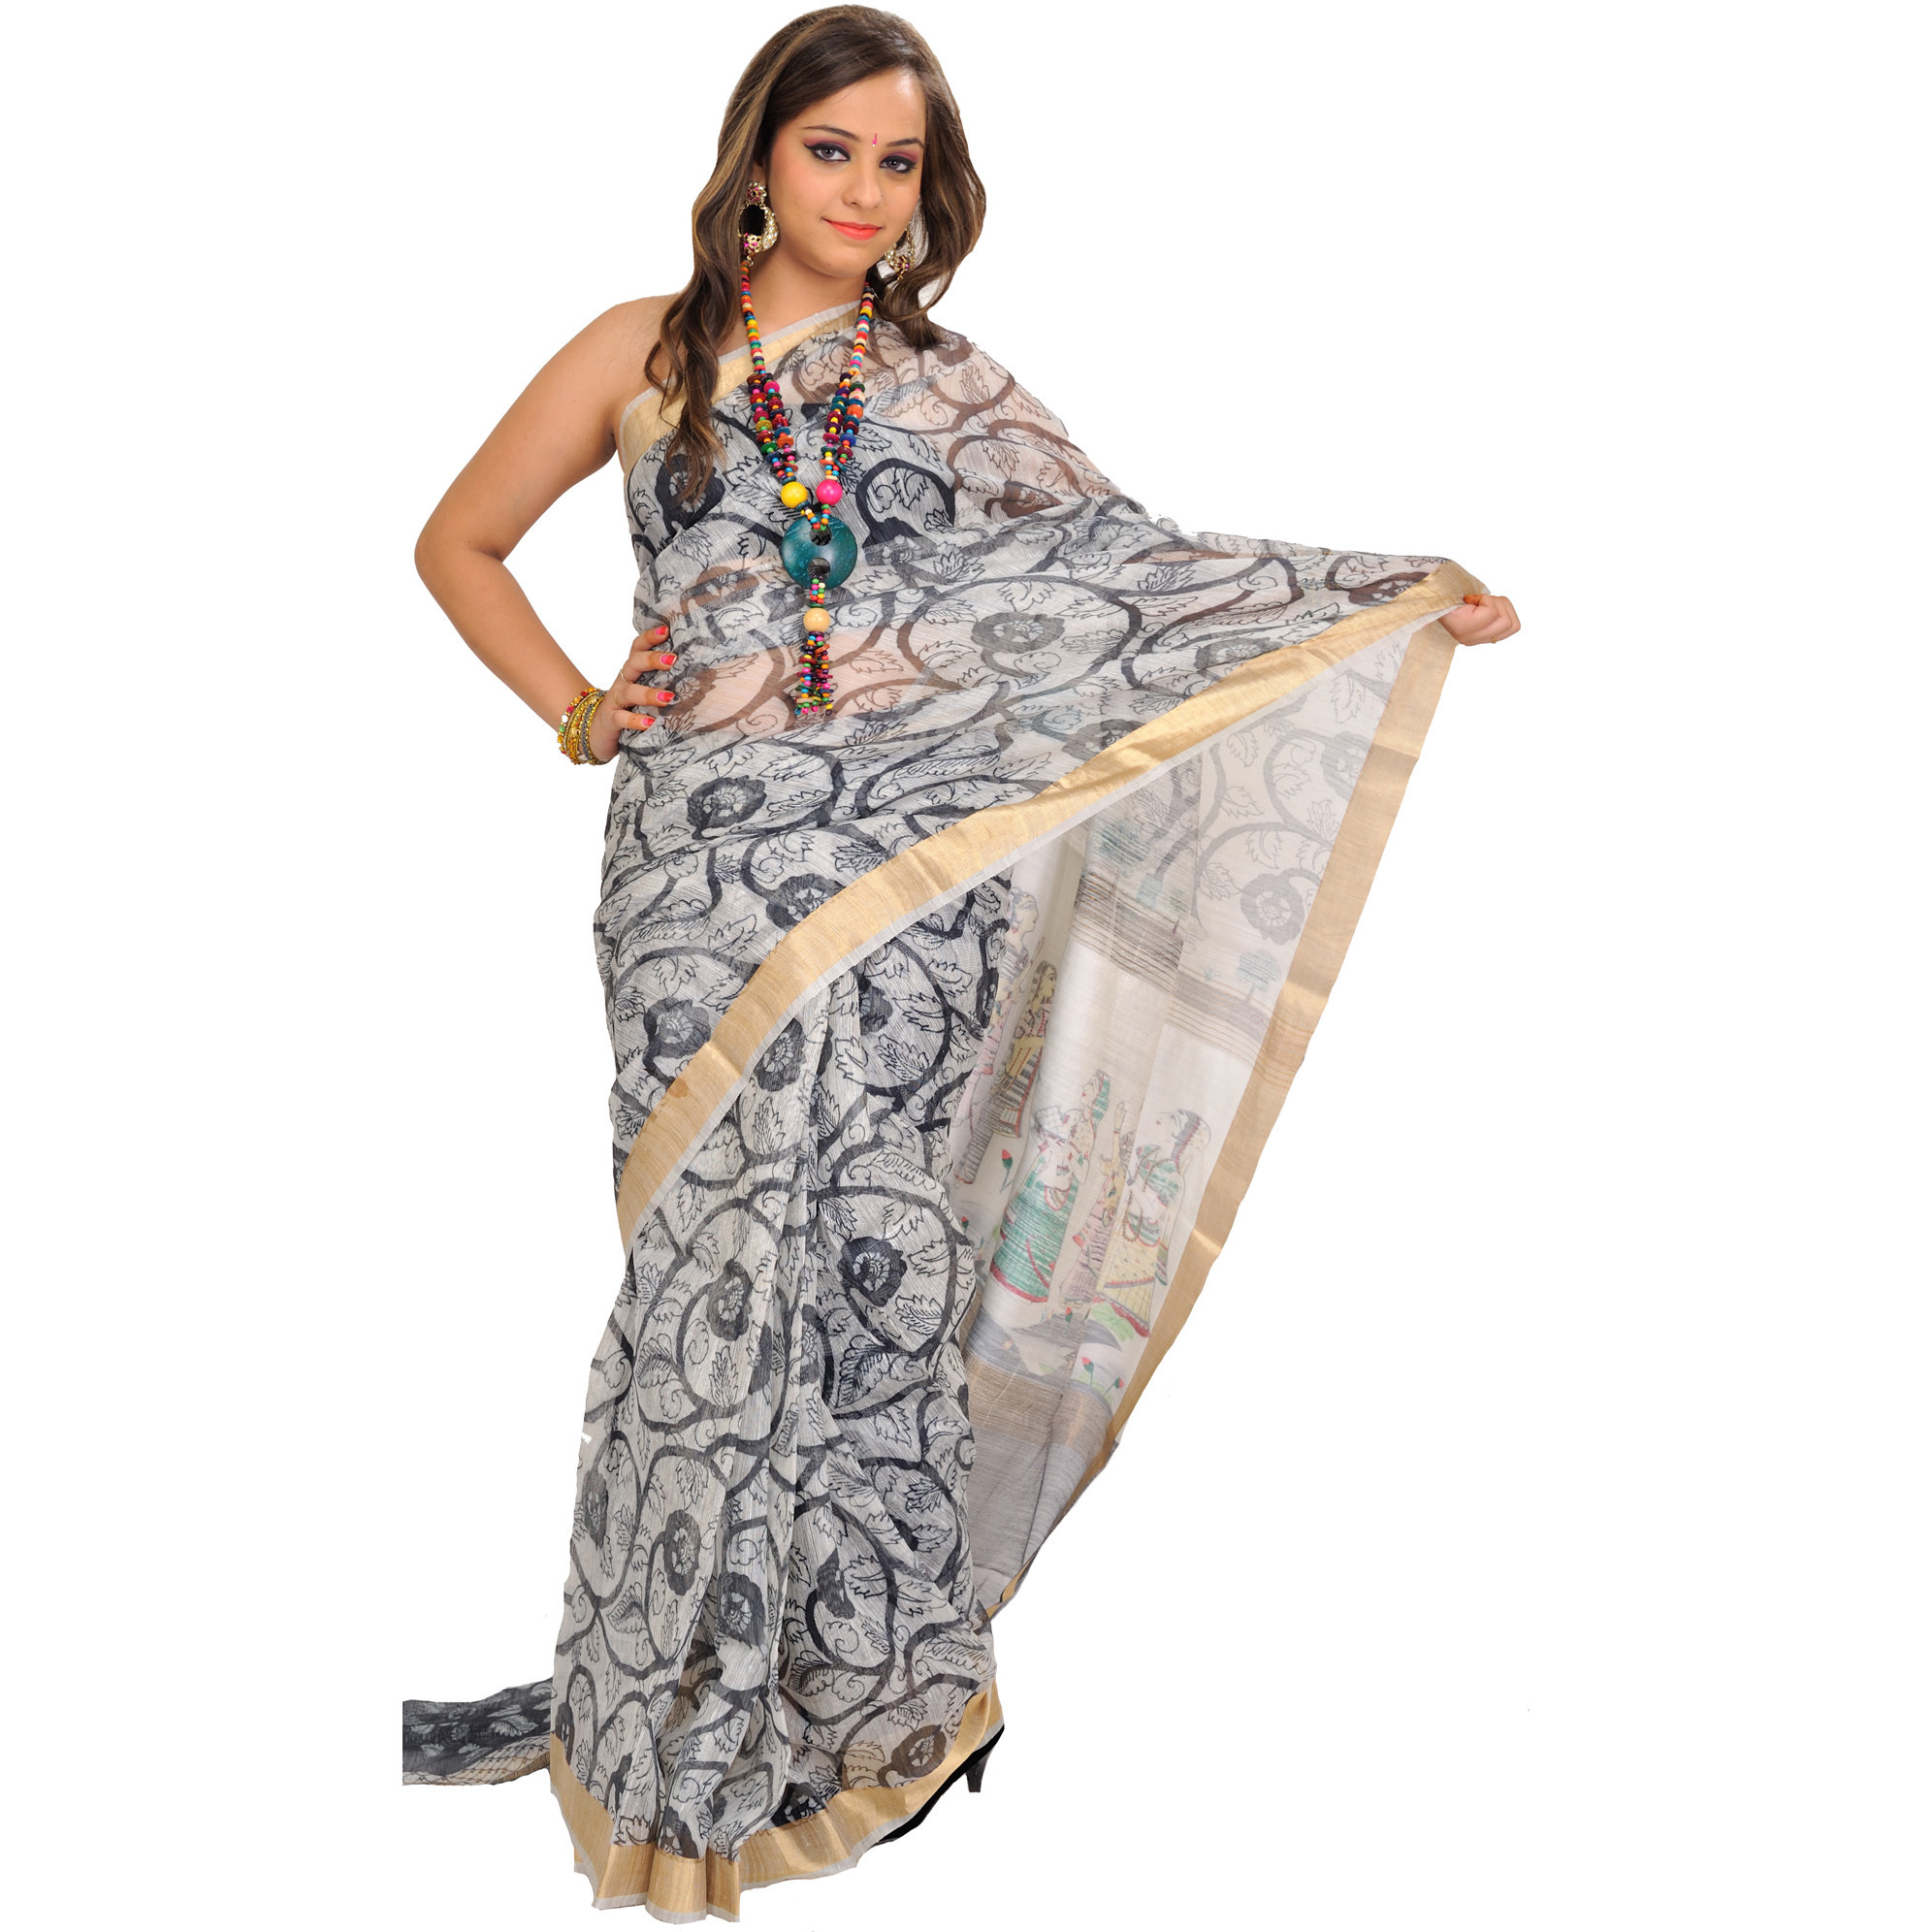 White and Black Digital-Printed Sari from Purvanchal with Krishna and Gopis on Aanchal